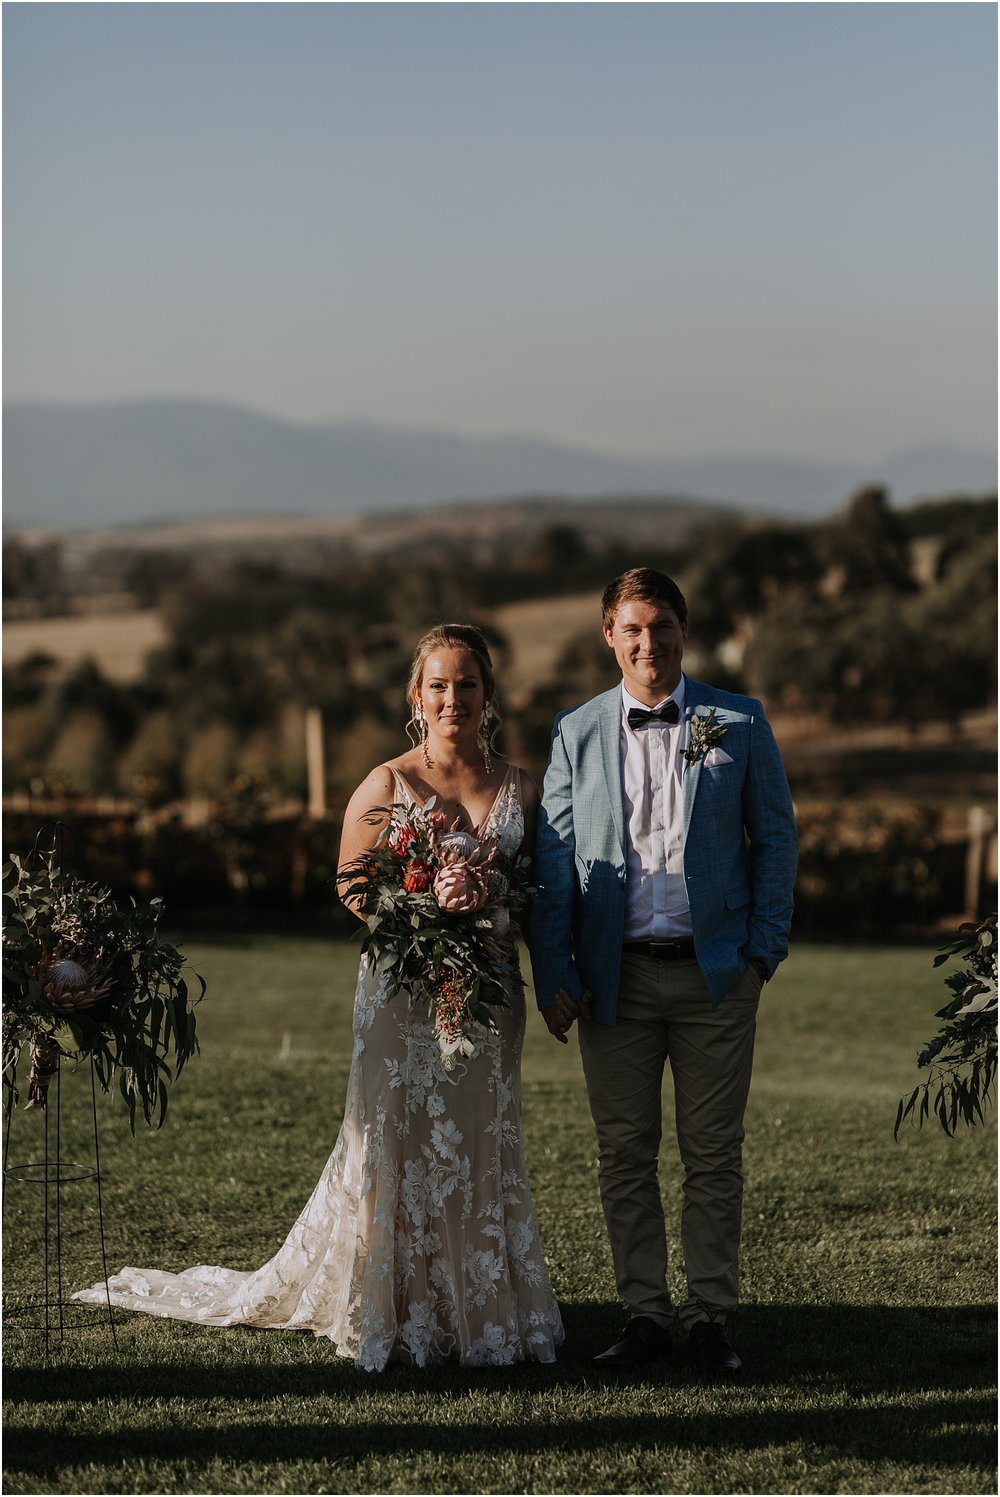 Lacey and Warwick's Yarra Valley winery wedding at Vines Helens Hill._0056.jpg